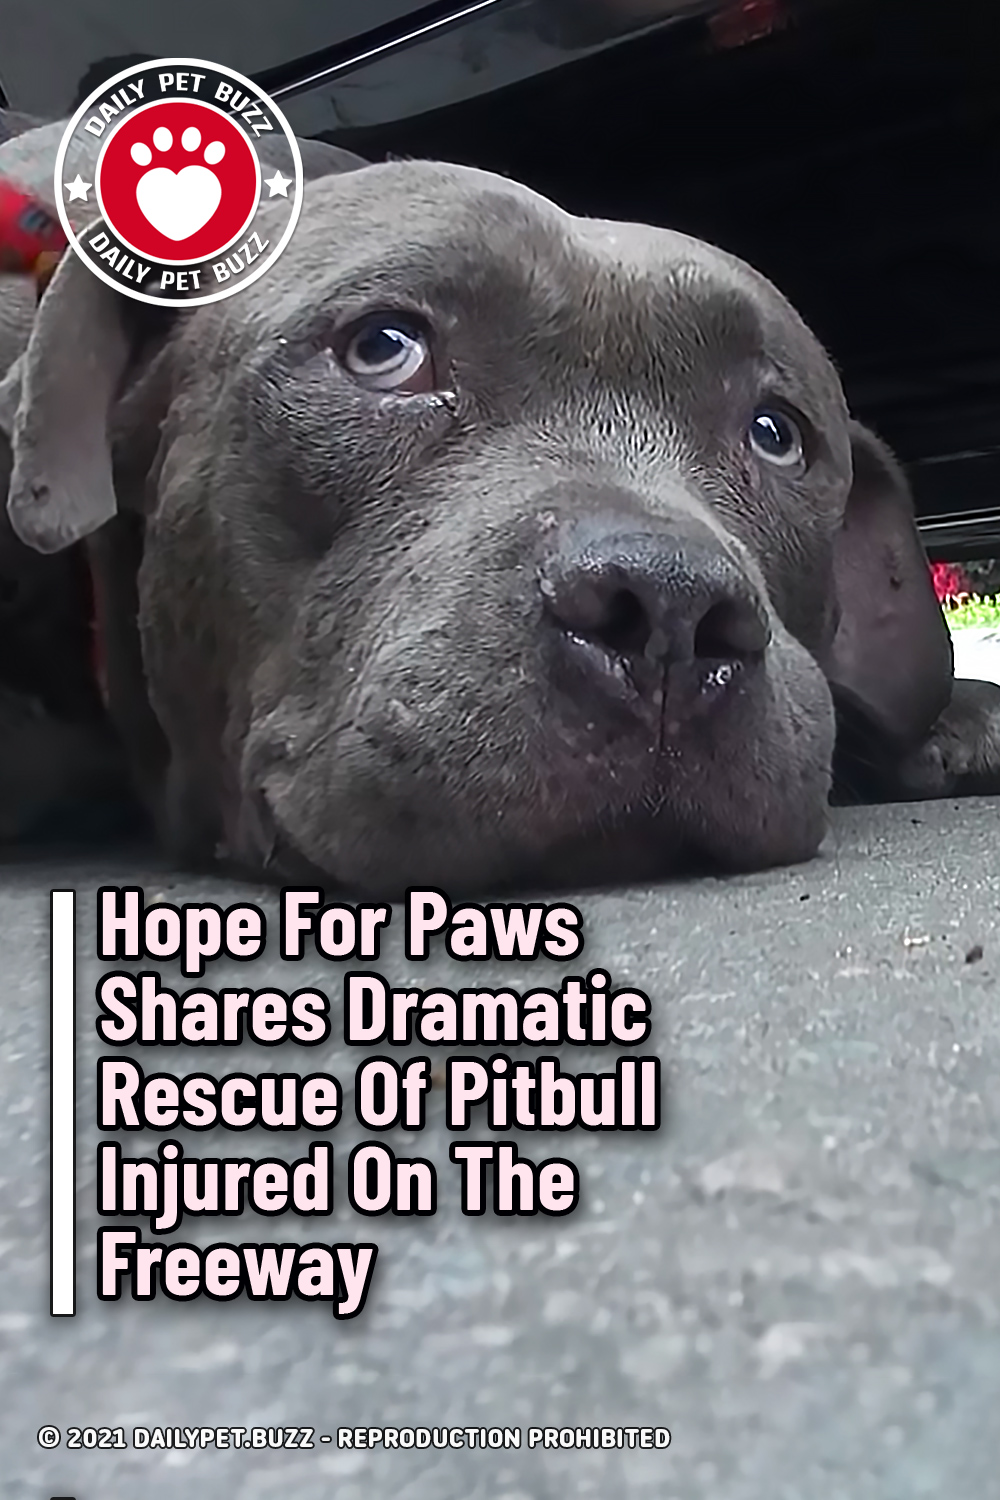 Hope For Paws Shares Dramatic Rescue Of Pitbull Injured On The Freeway